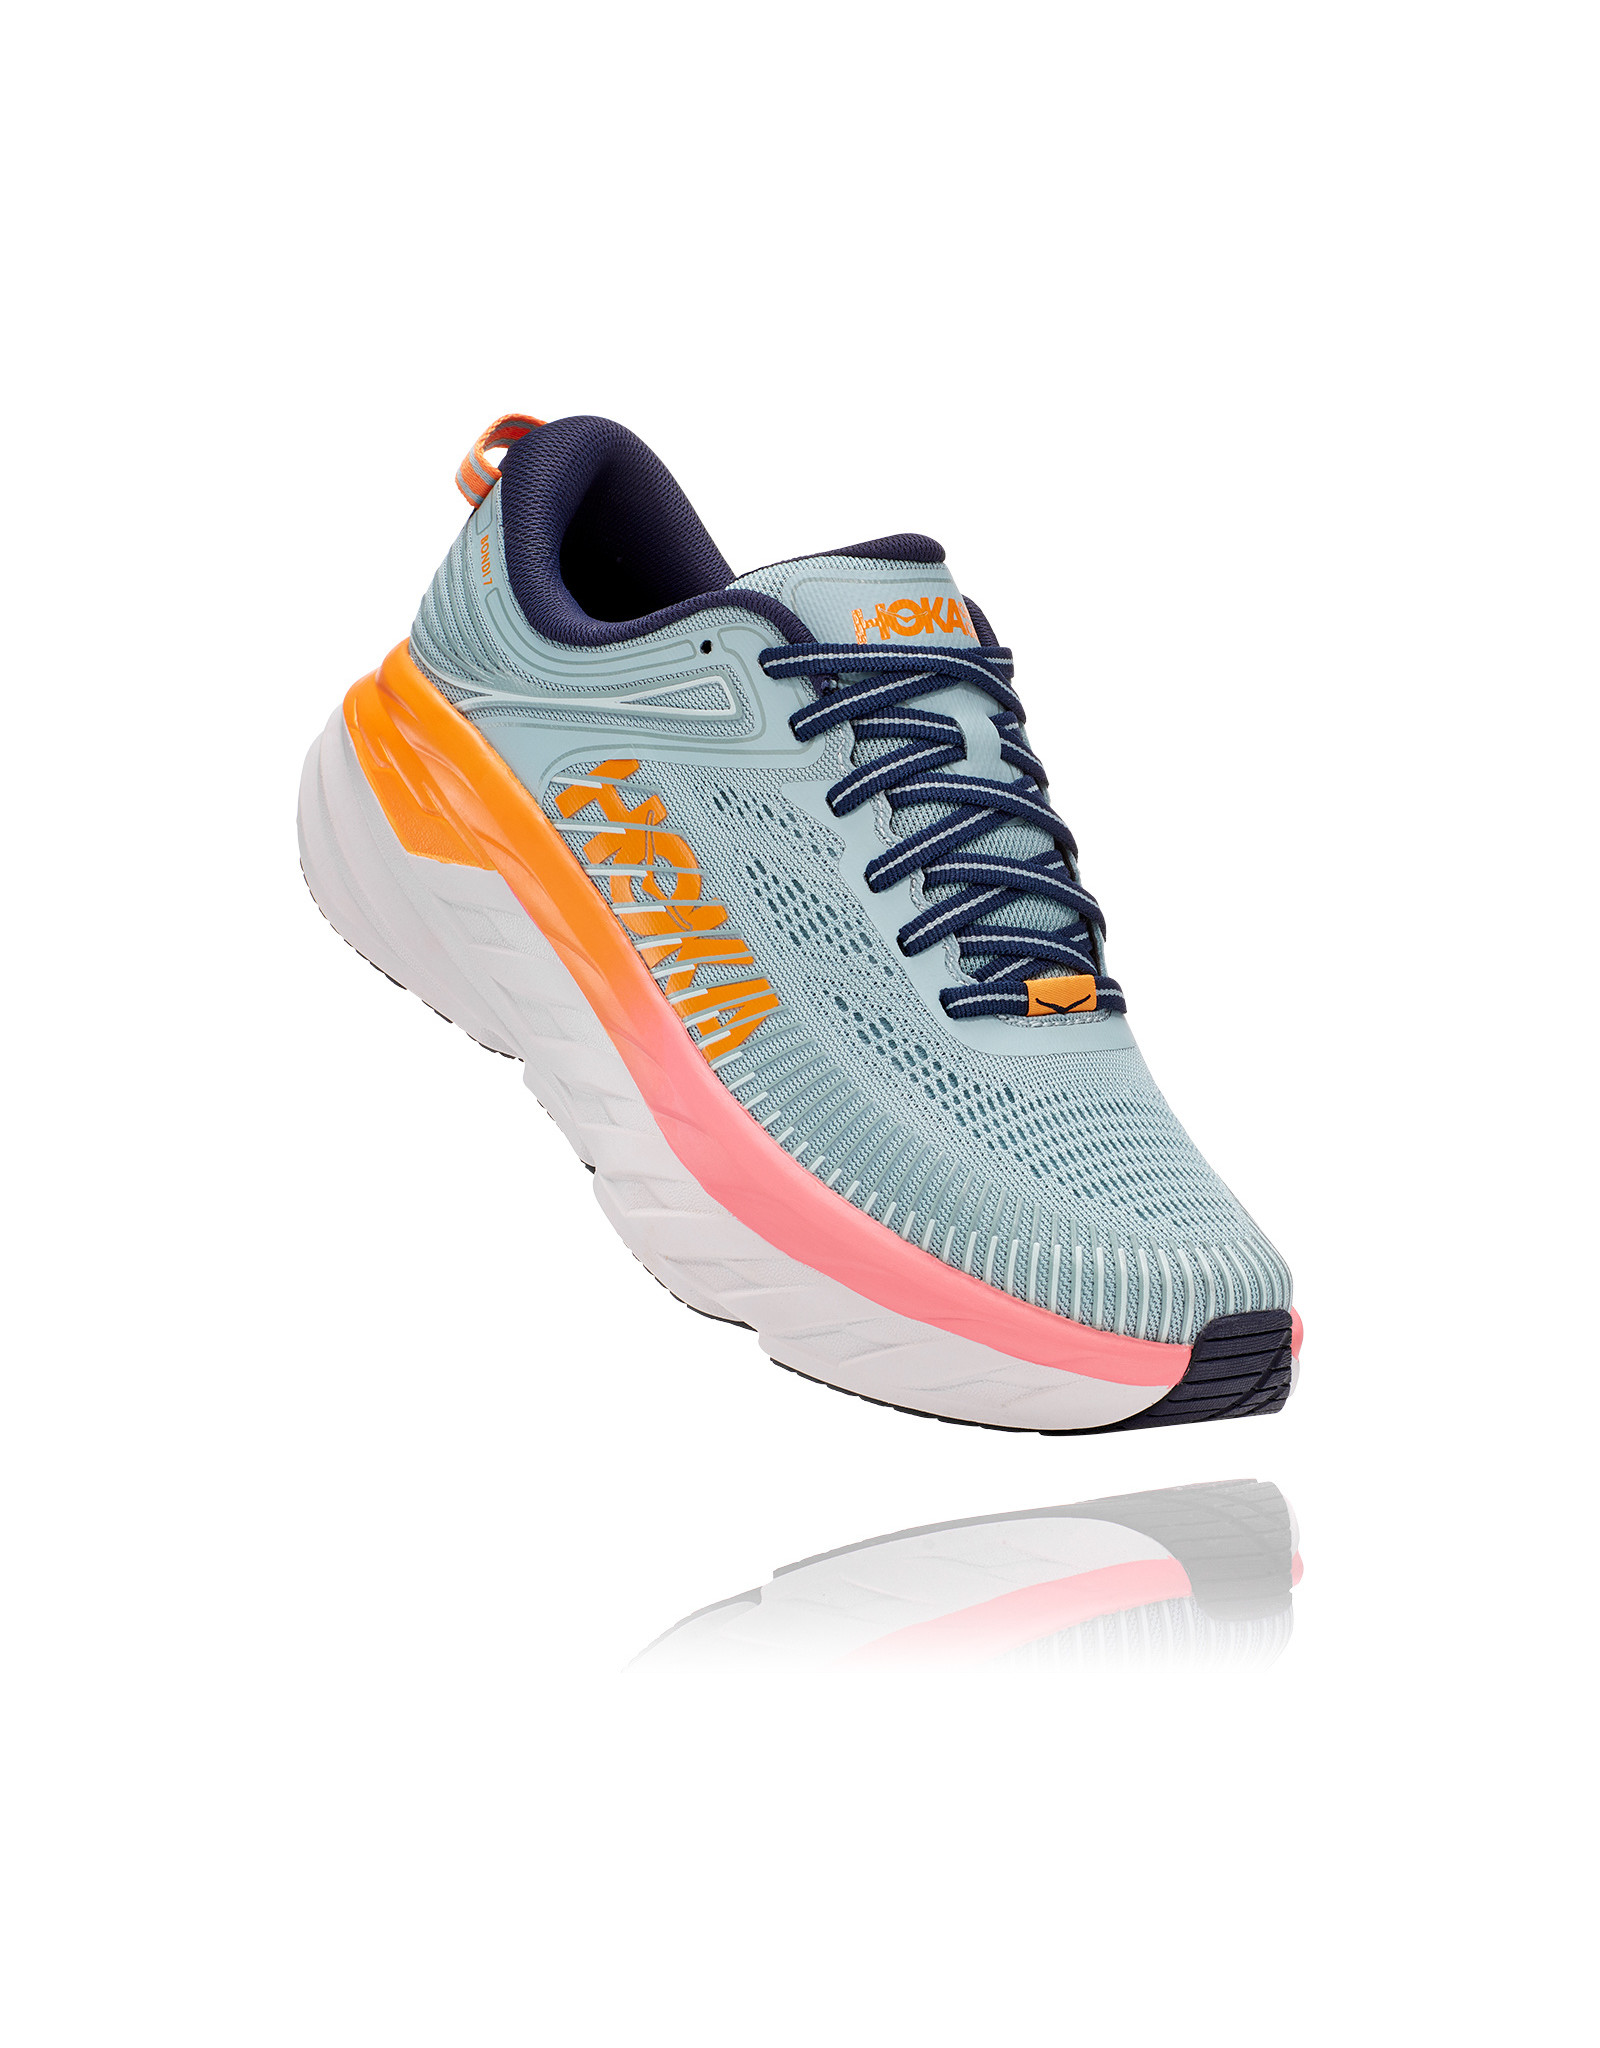 HOKA ONE ONE WOMEN'S BONDI 7-BLUE HAZE / BLACK IRIS